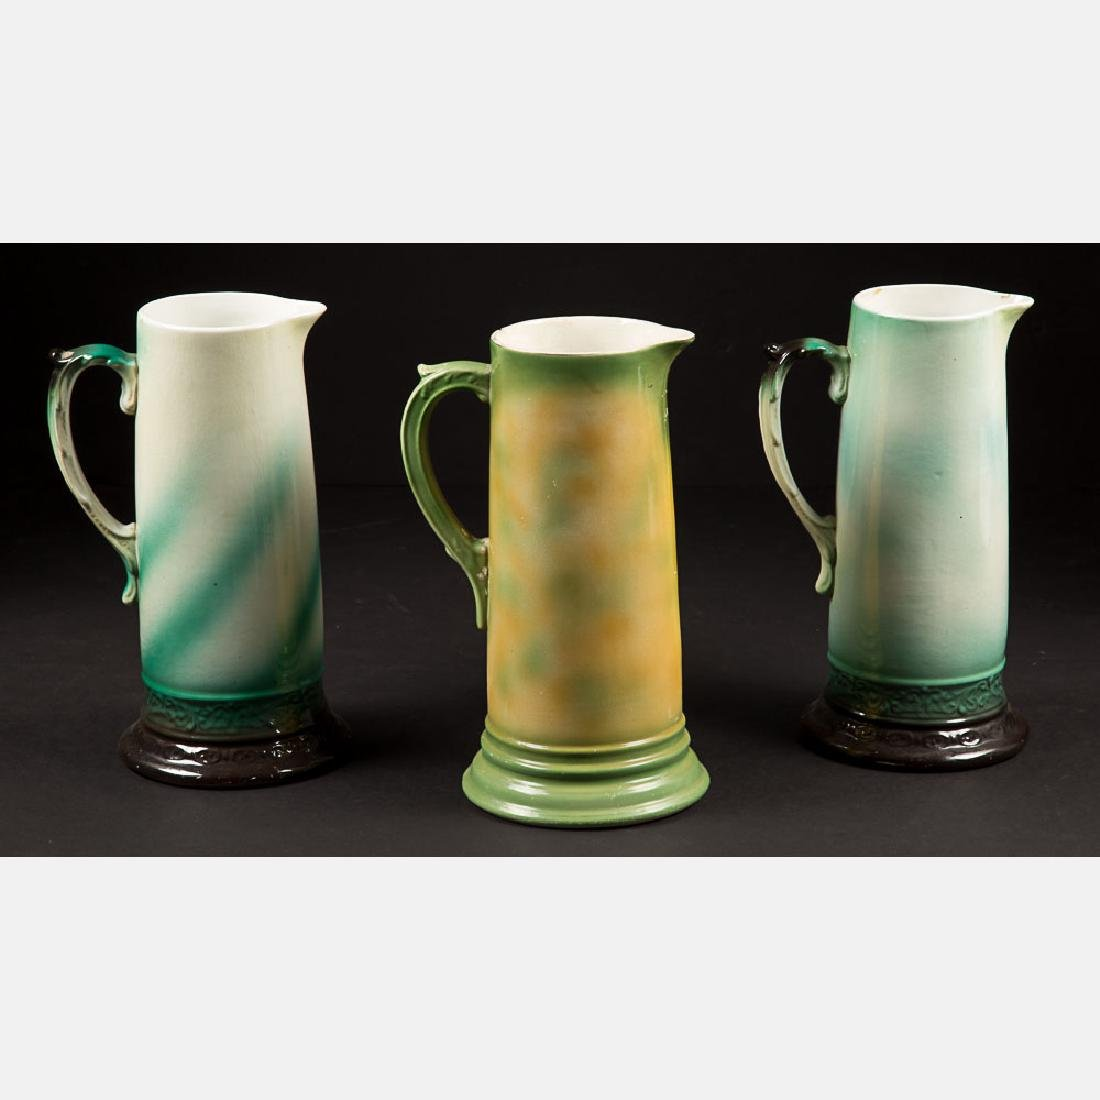 Two Sinclair Art Co. Porcelain Pitchers from the - 2